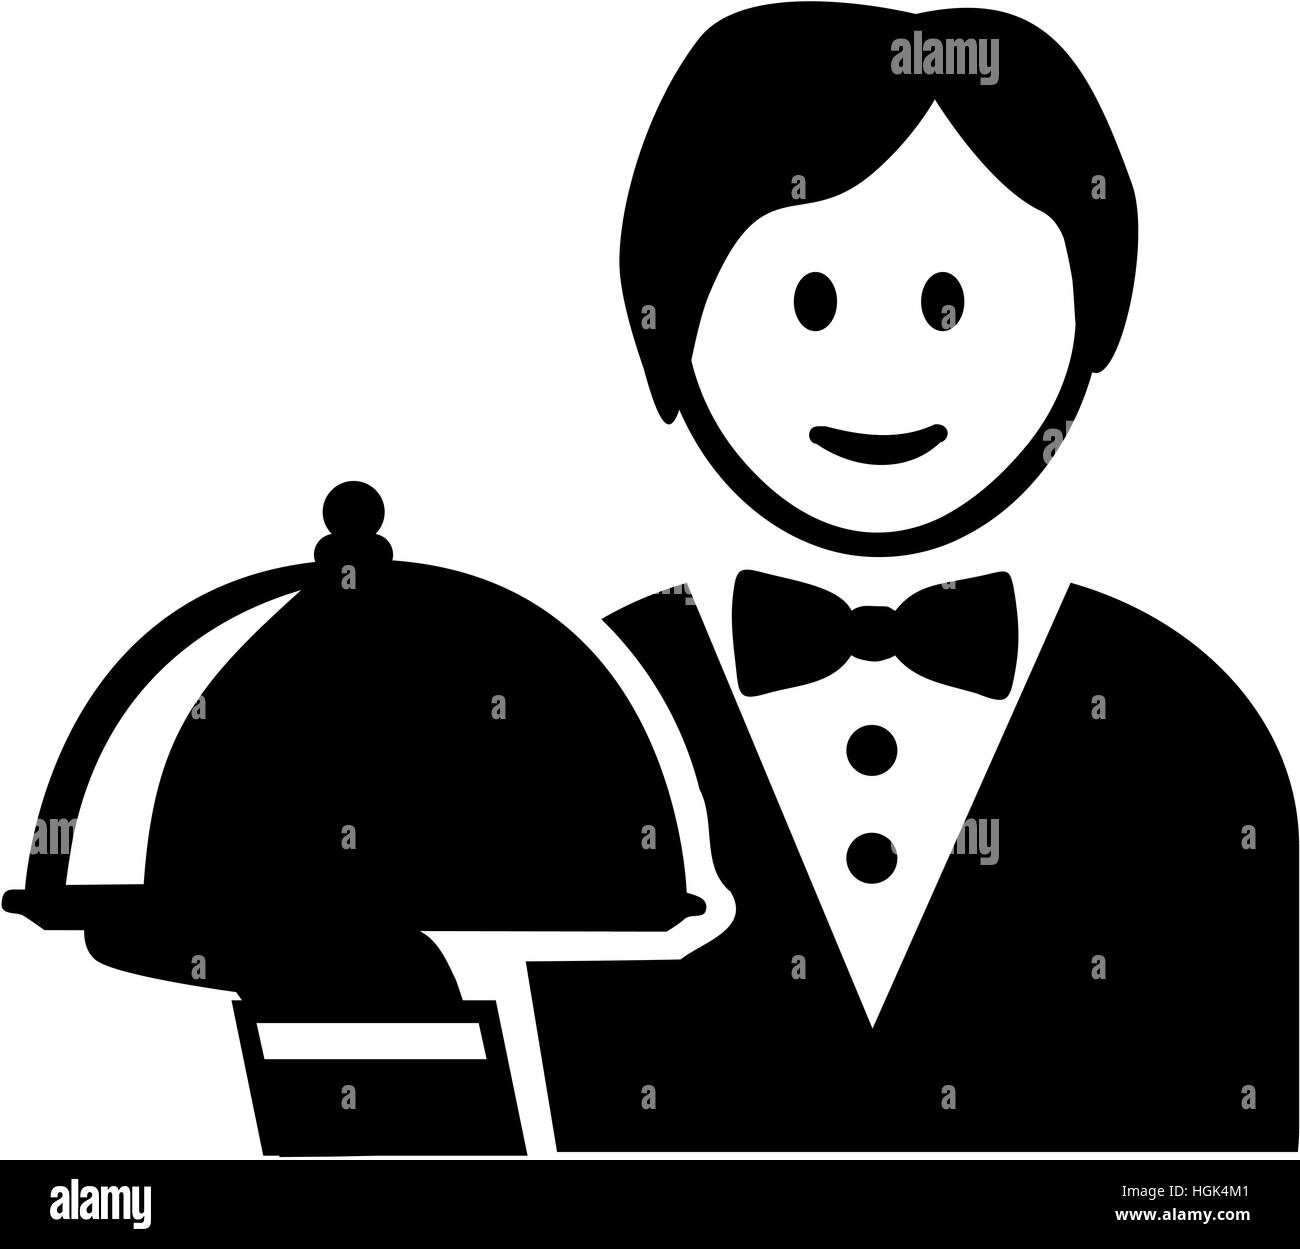 Server cartoon - Stock Image